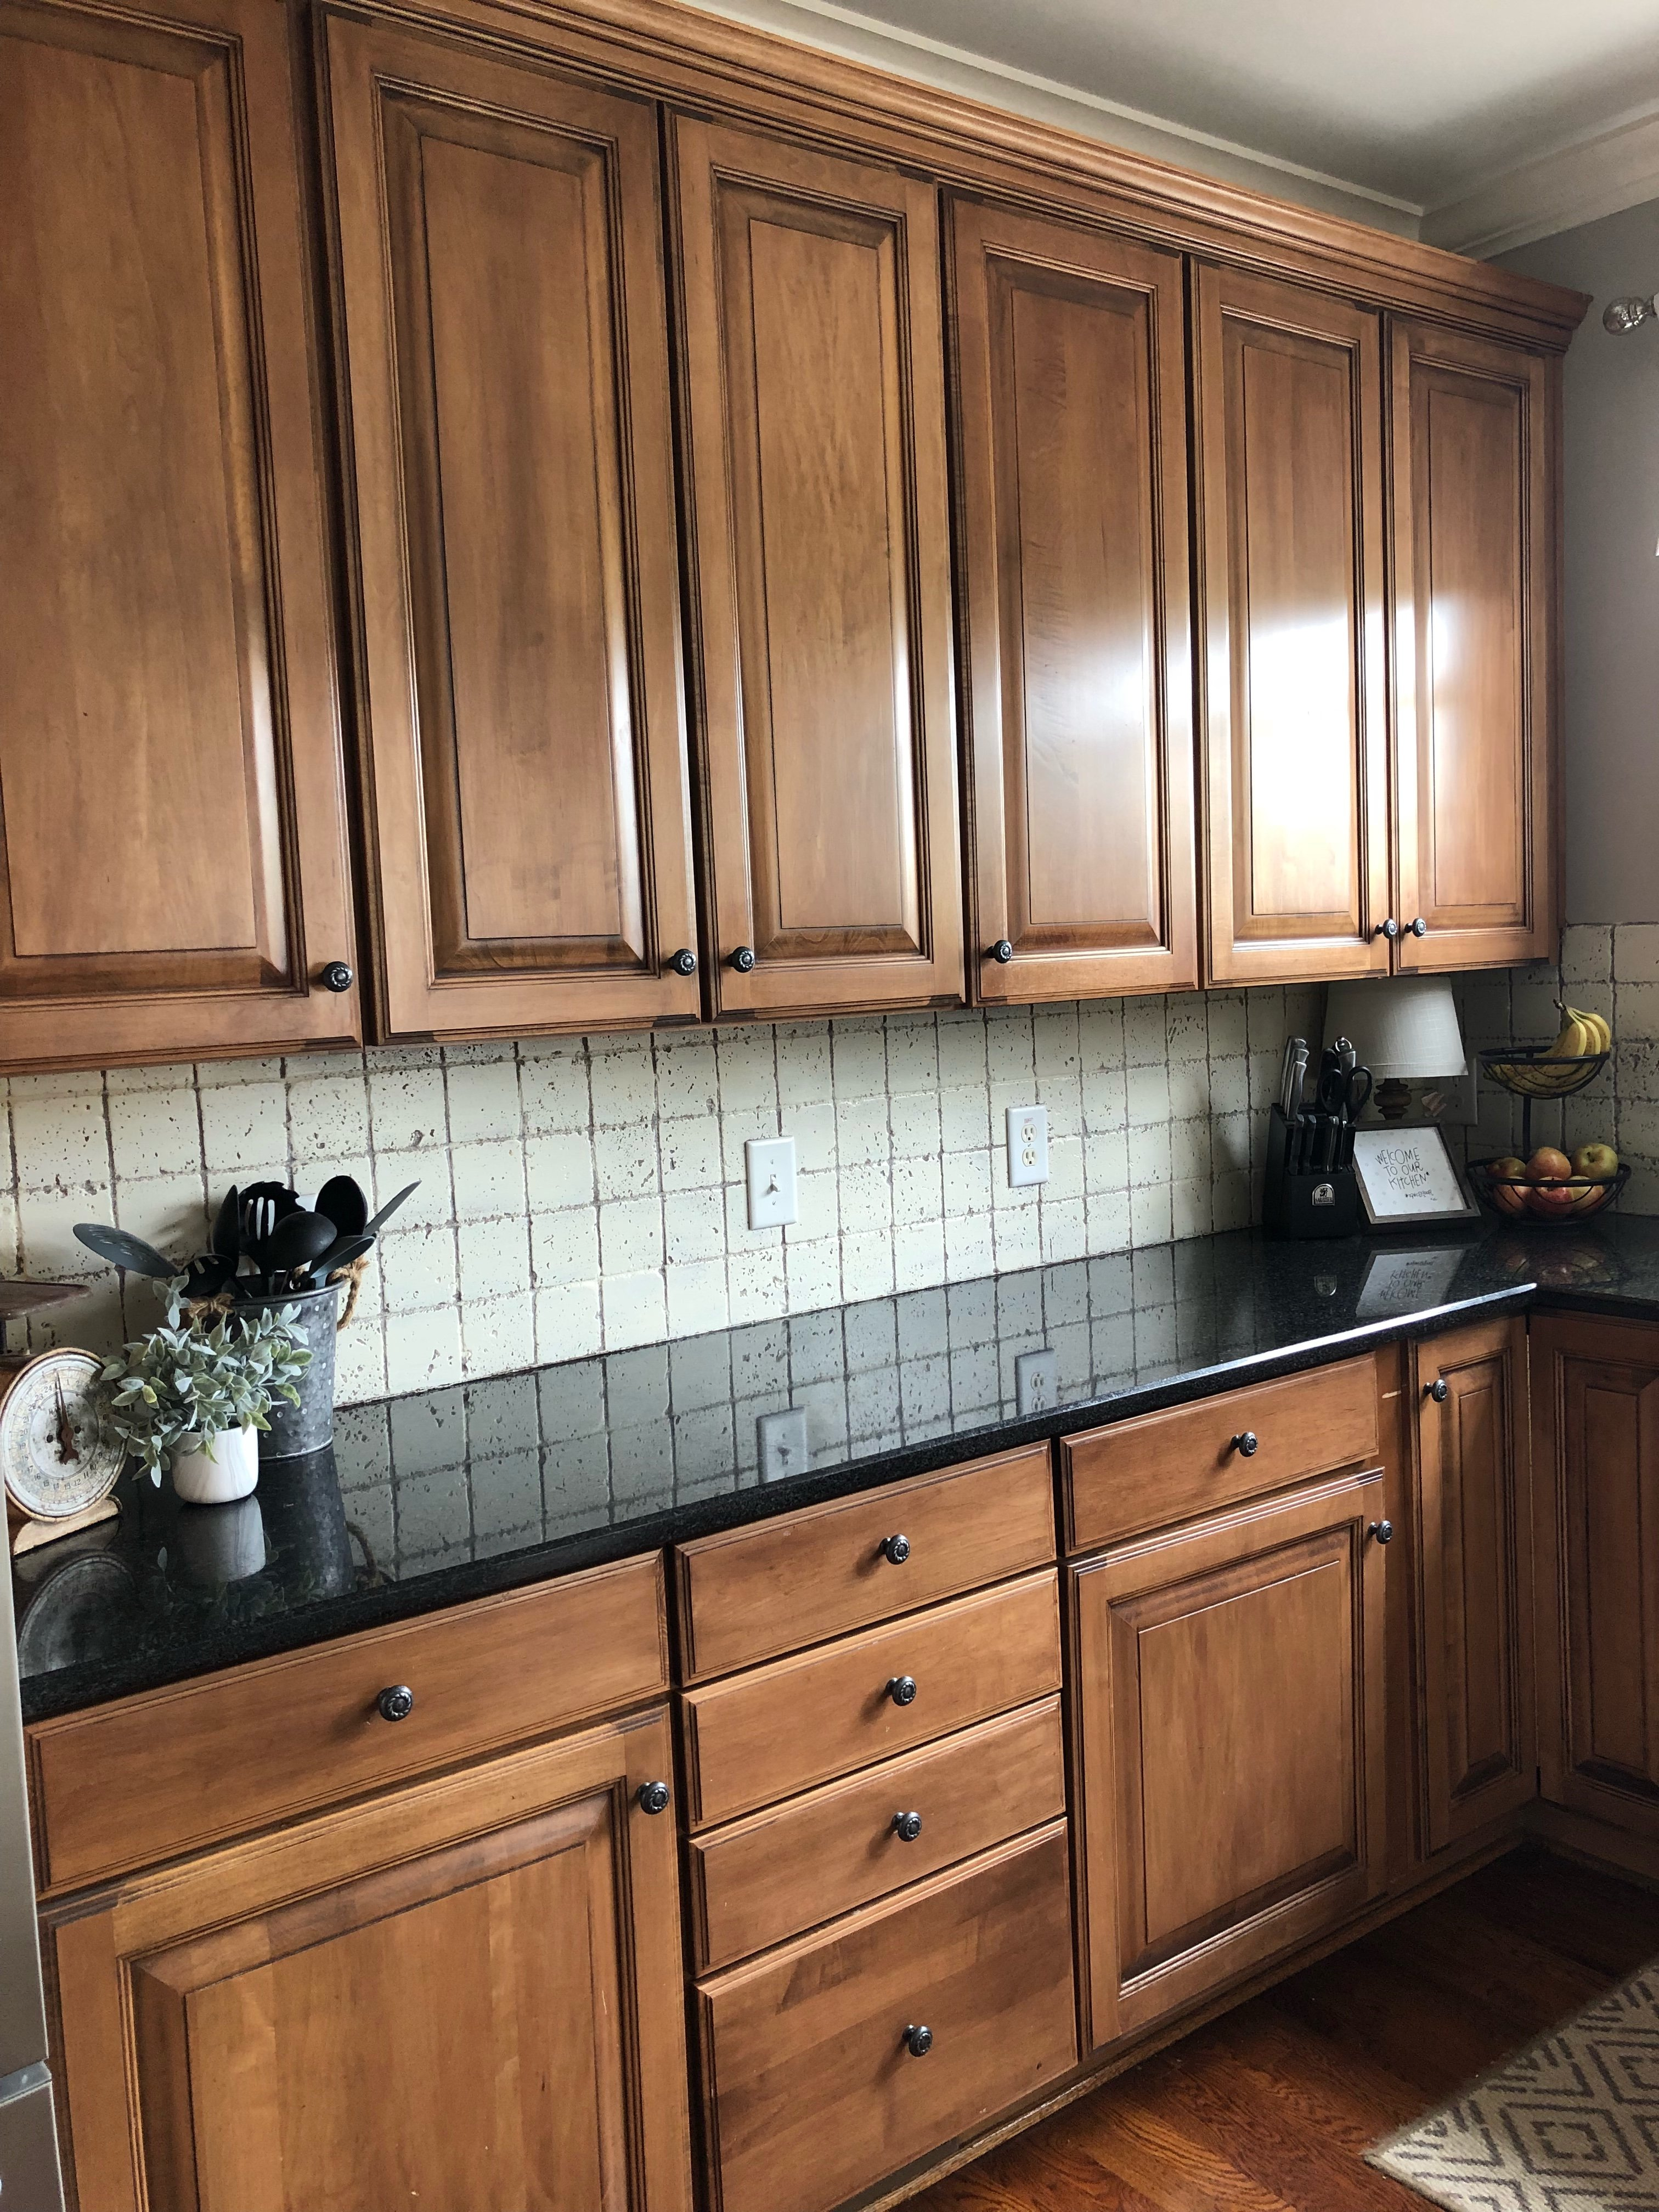 My painted kitchen cabinet makeover, the brown cabinets before they were painted white